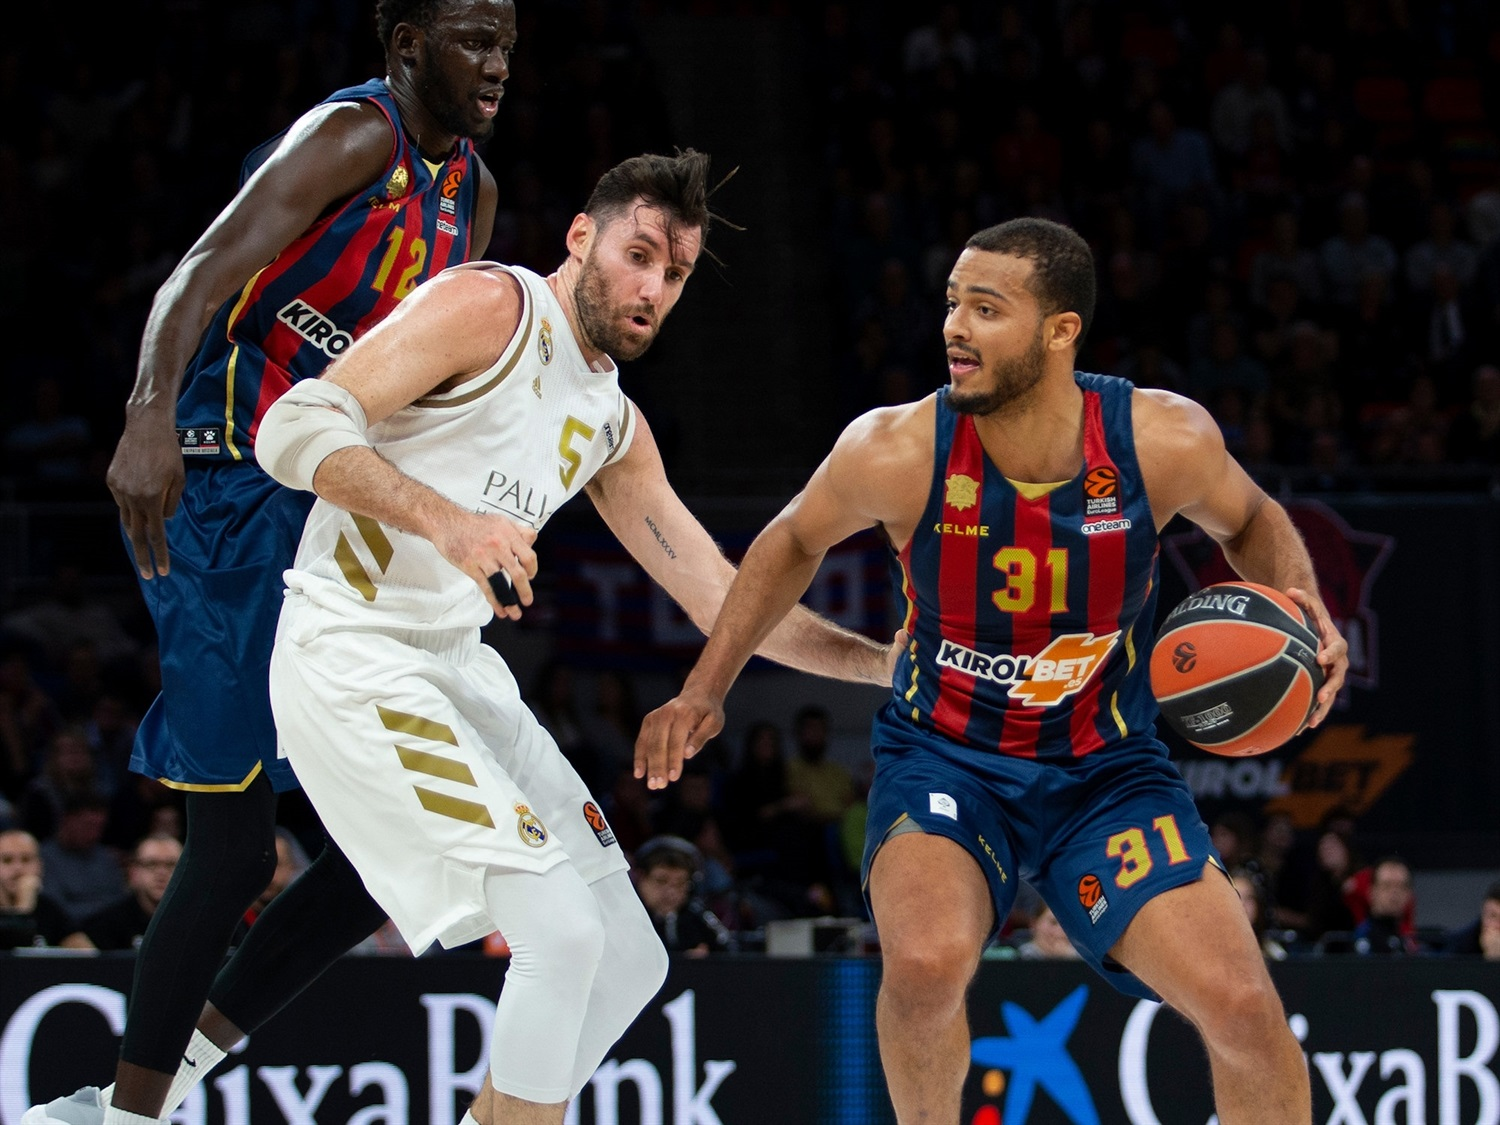 KIROLBET Baskonia Vitoria-Gasteiz vs. Real Madrid - Game